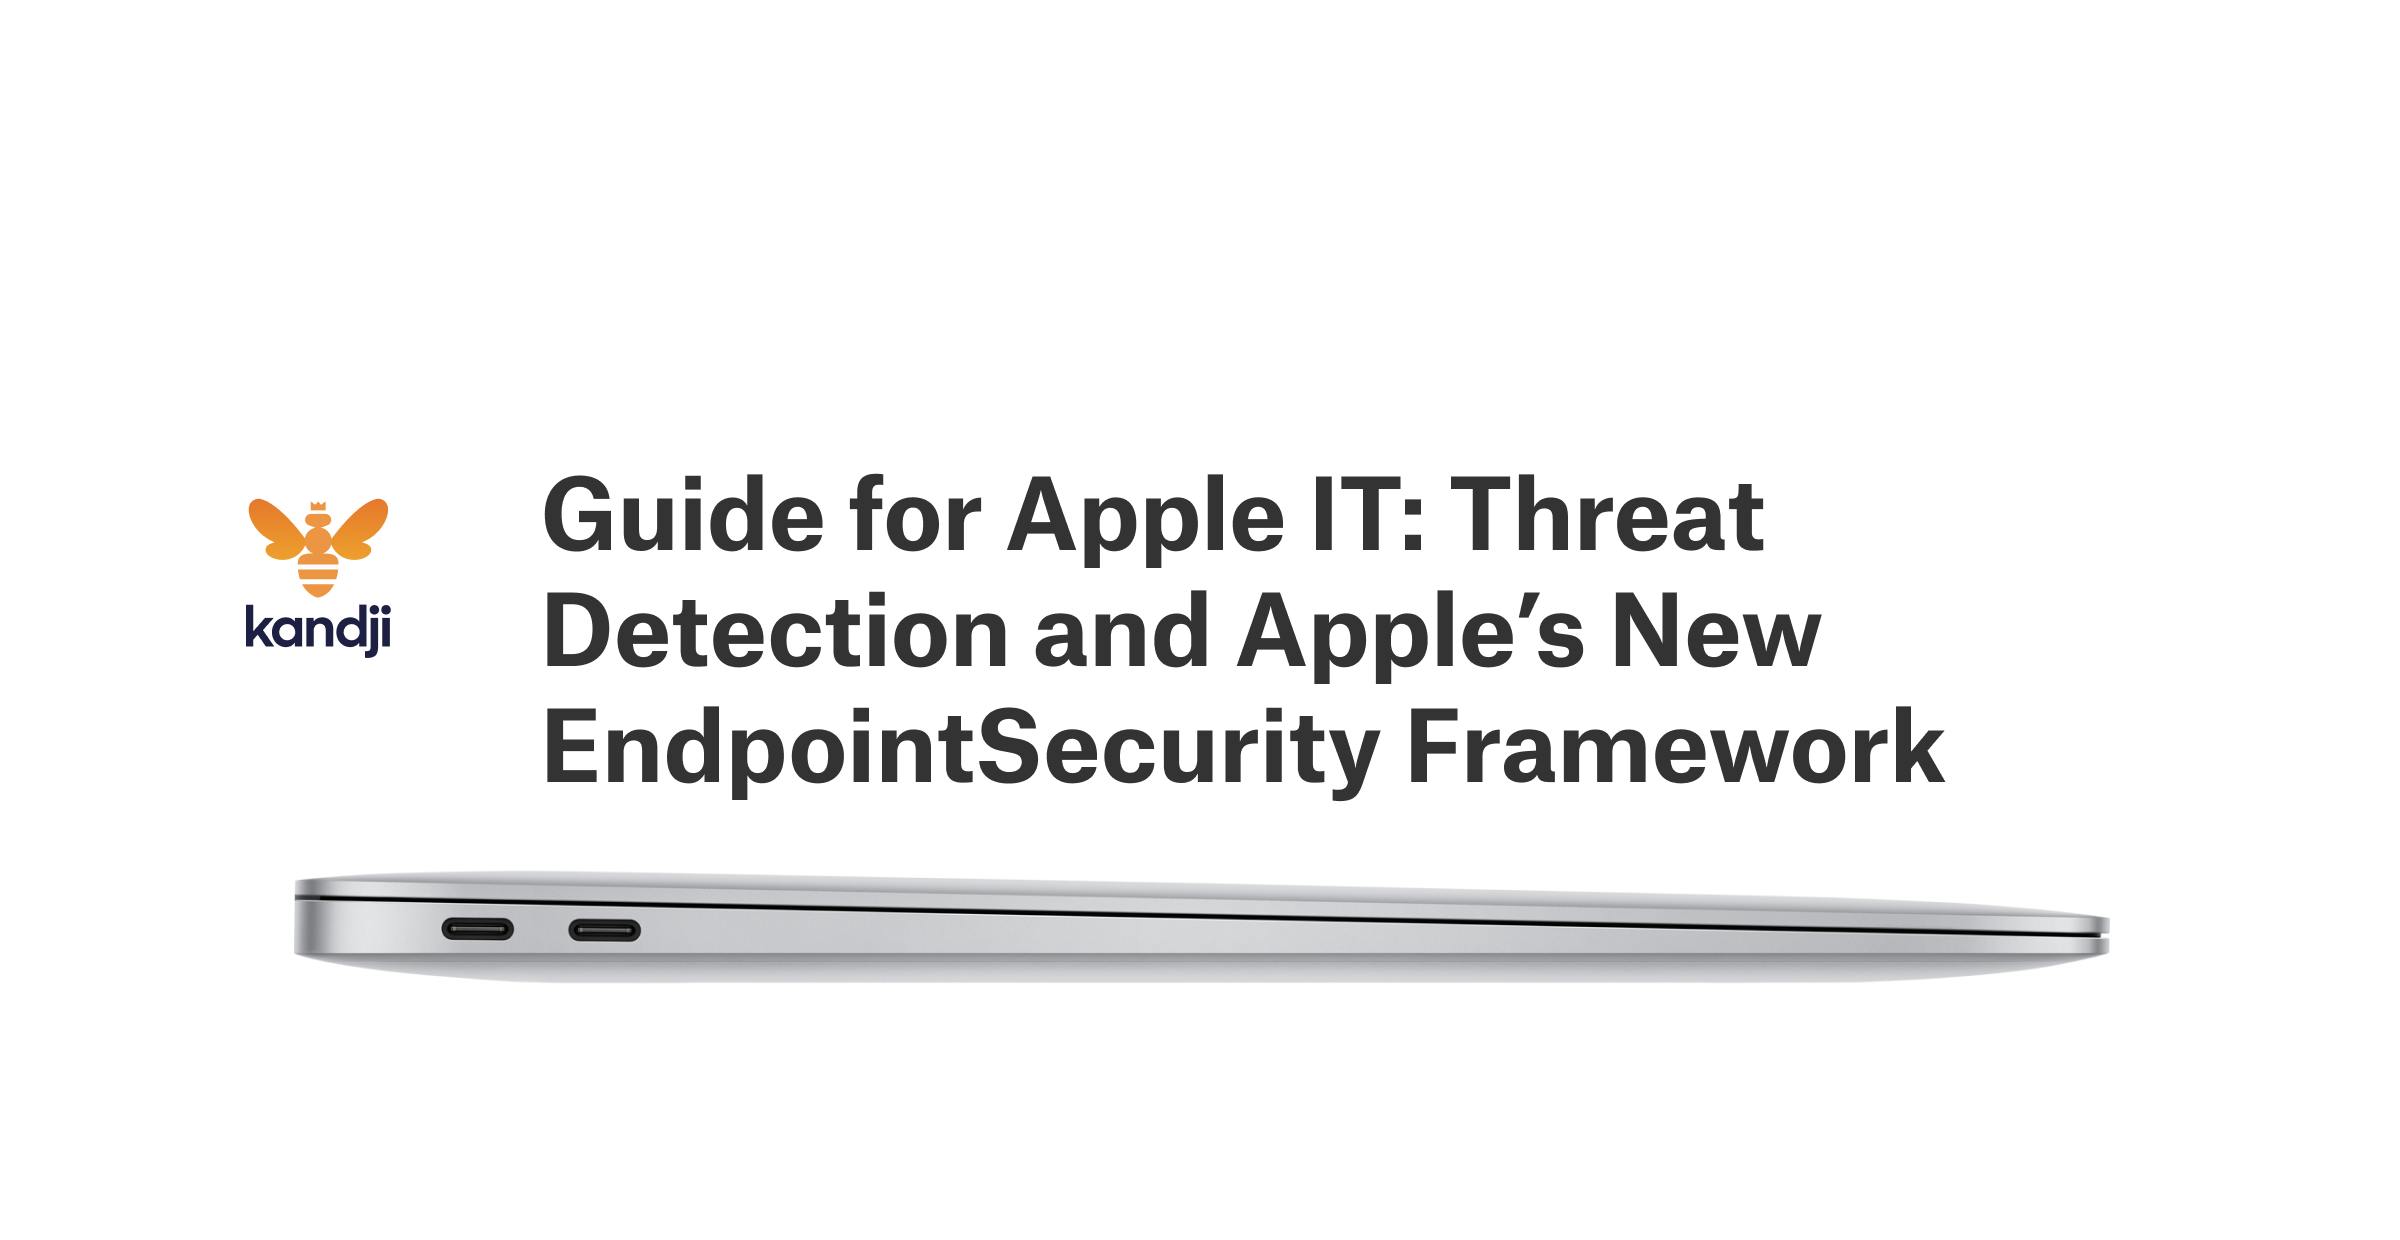 Guide for Apple IT: Threat Detection and Apple's New EndpointSecurity Framework